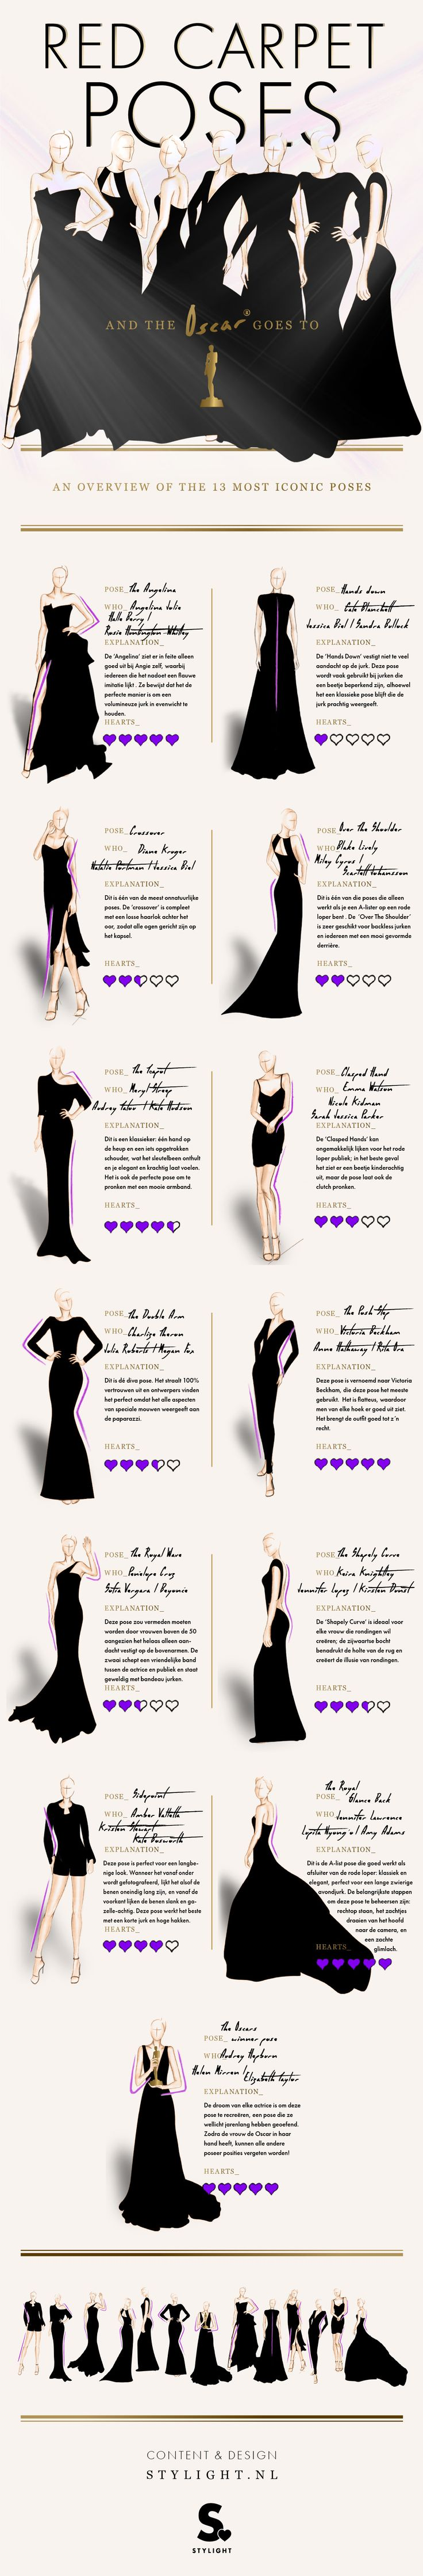 Love it! Red Carpet Poses Infographic